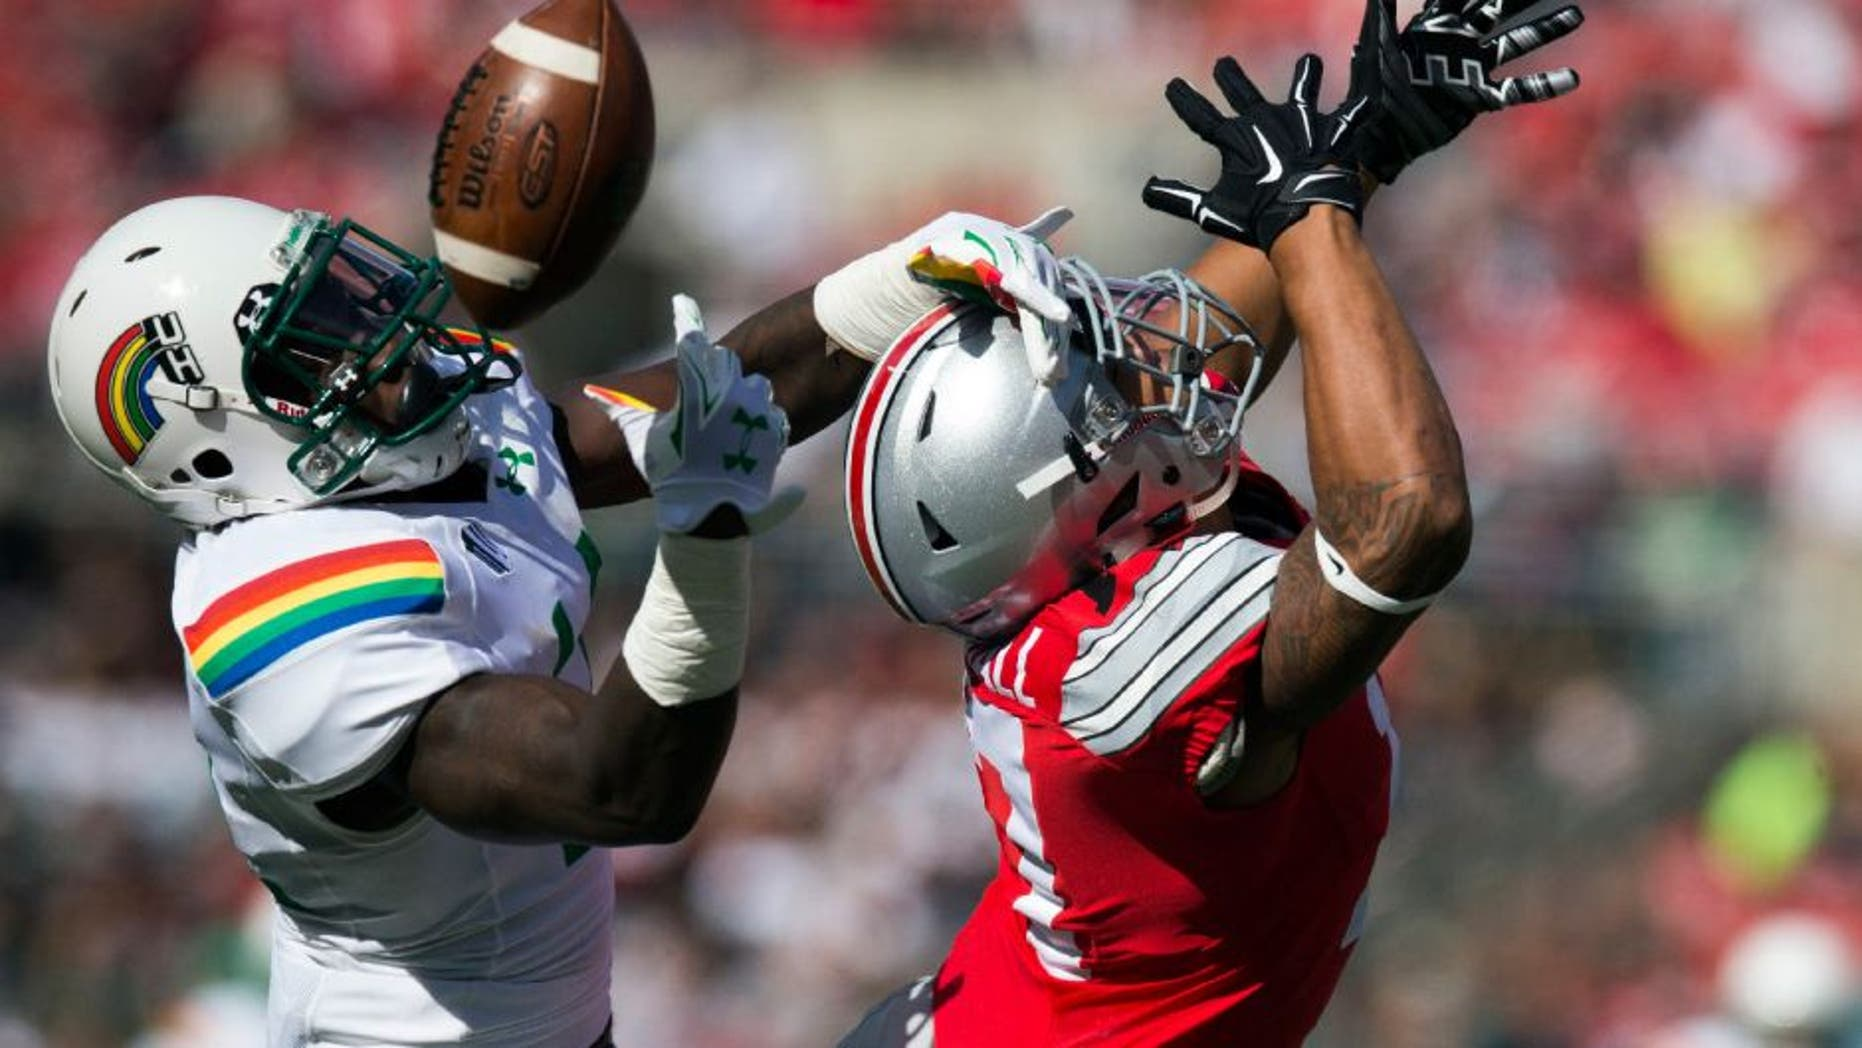 Hawaii Warriors defensive back Nick Nelson deflects a pass away from Ohio State Buckeyes running back Jalin Marshall.